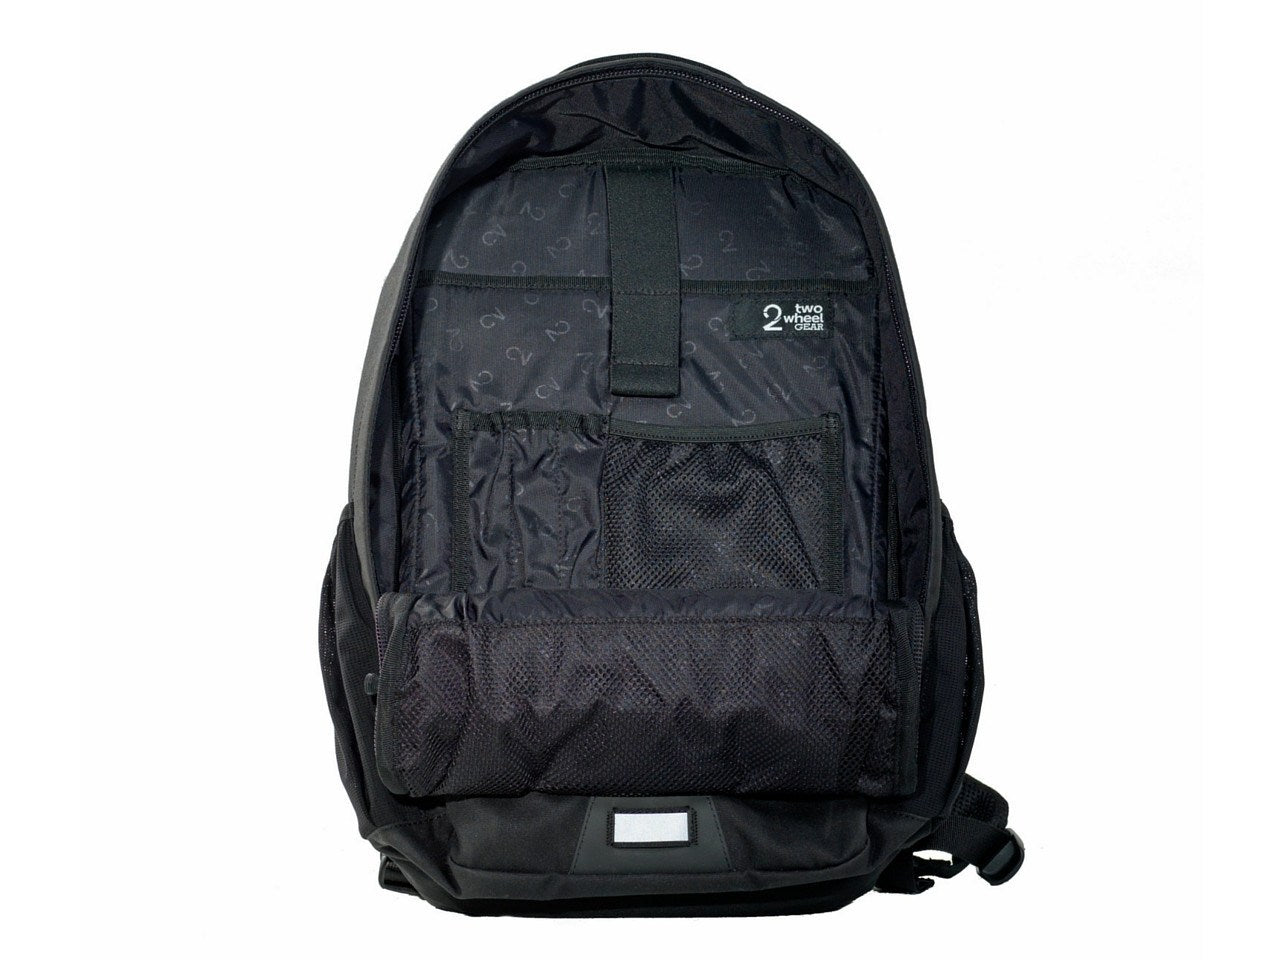 Pannier Backpack Convertible - Inside Open - Black Waxed Canvas